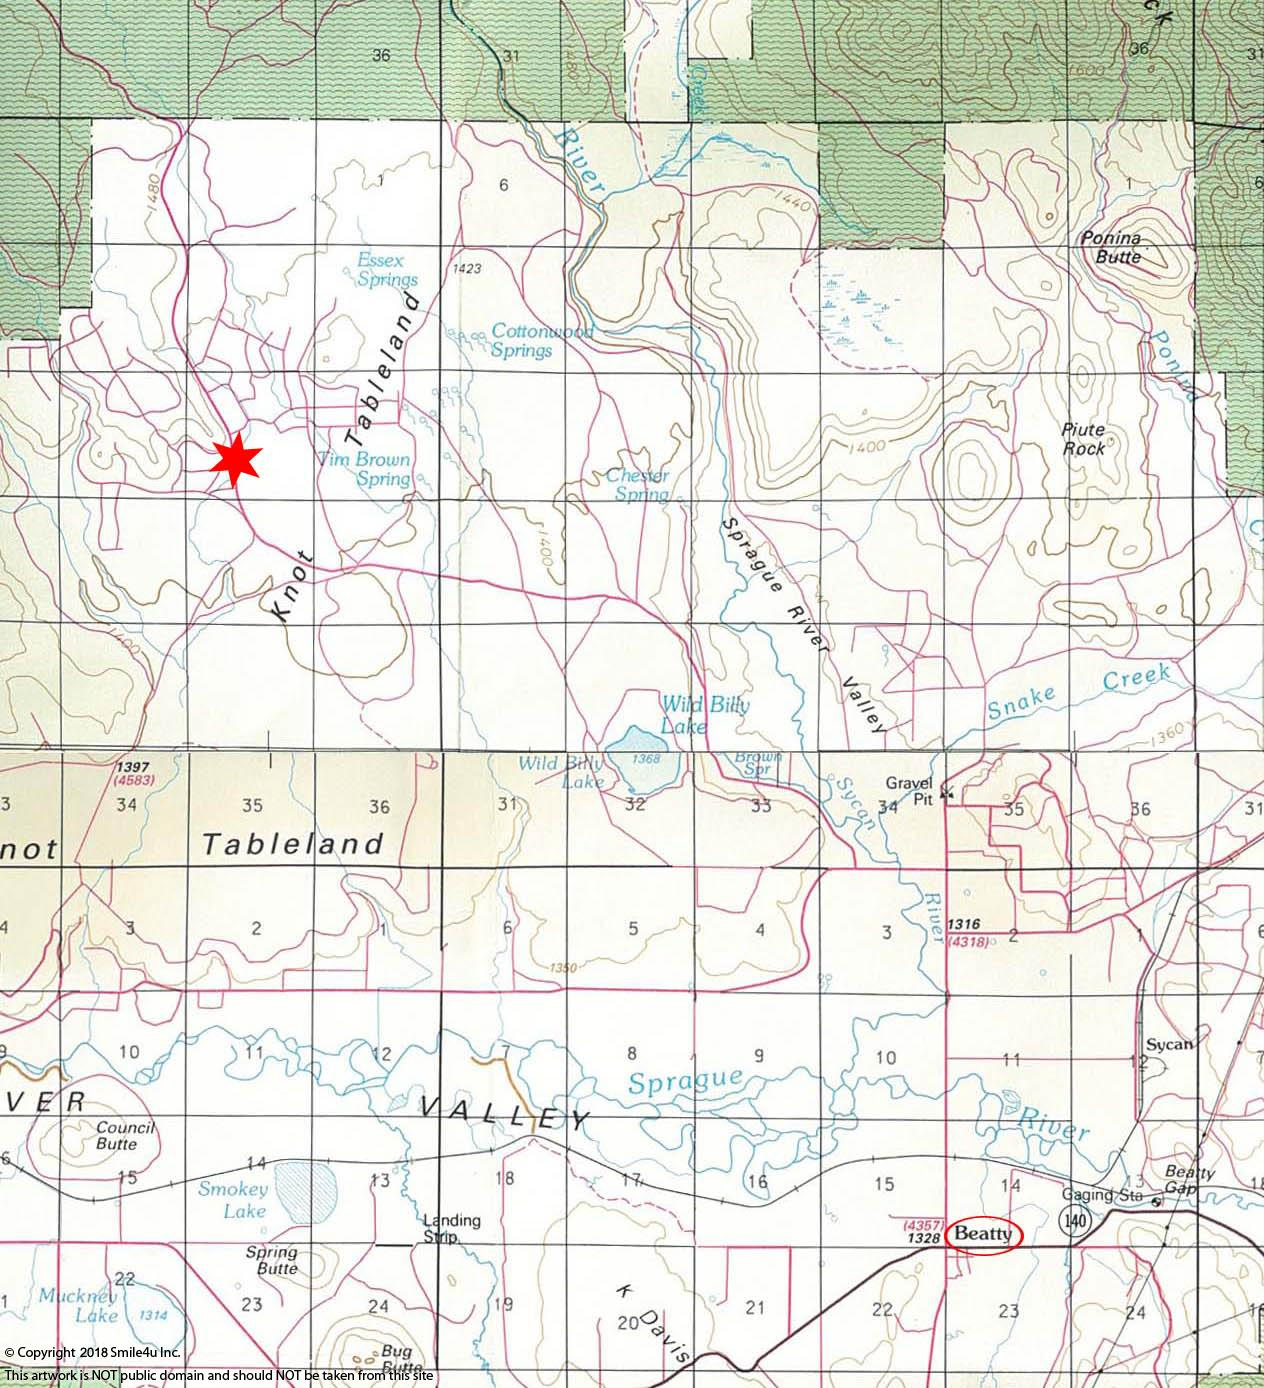 272472_watermarked_blm map merged beatty.jpg